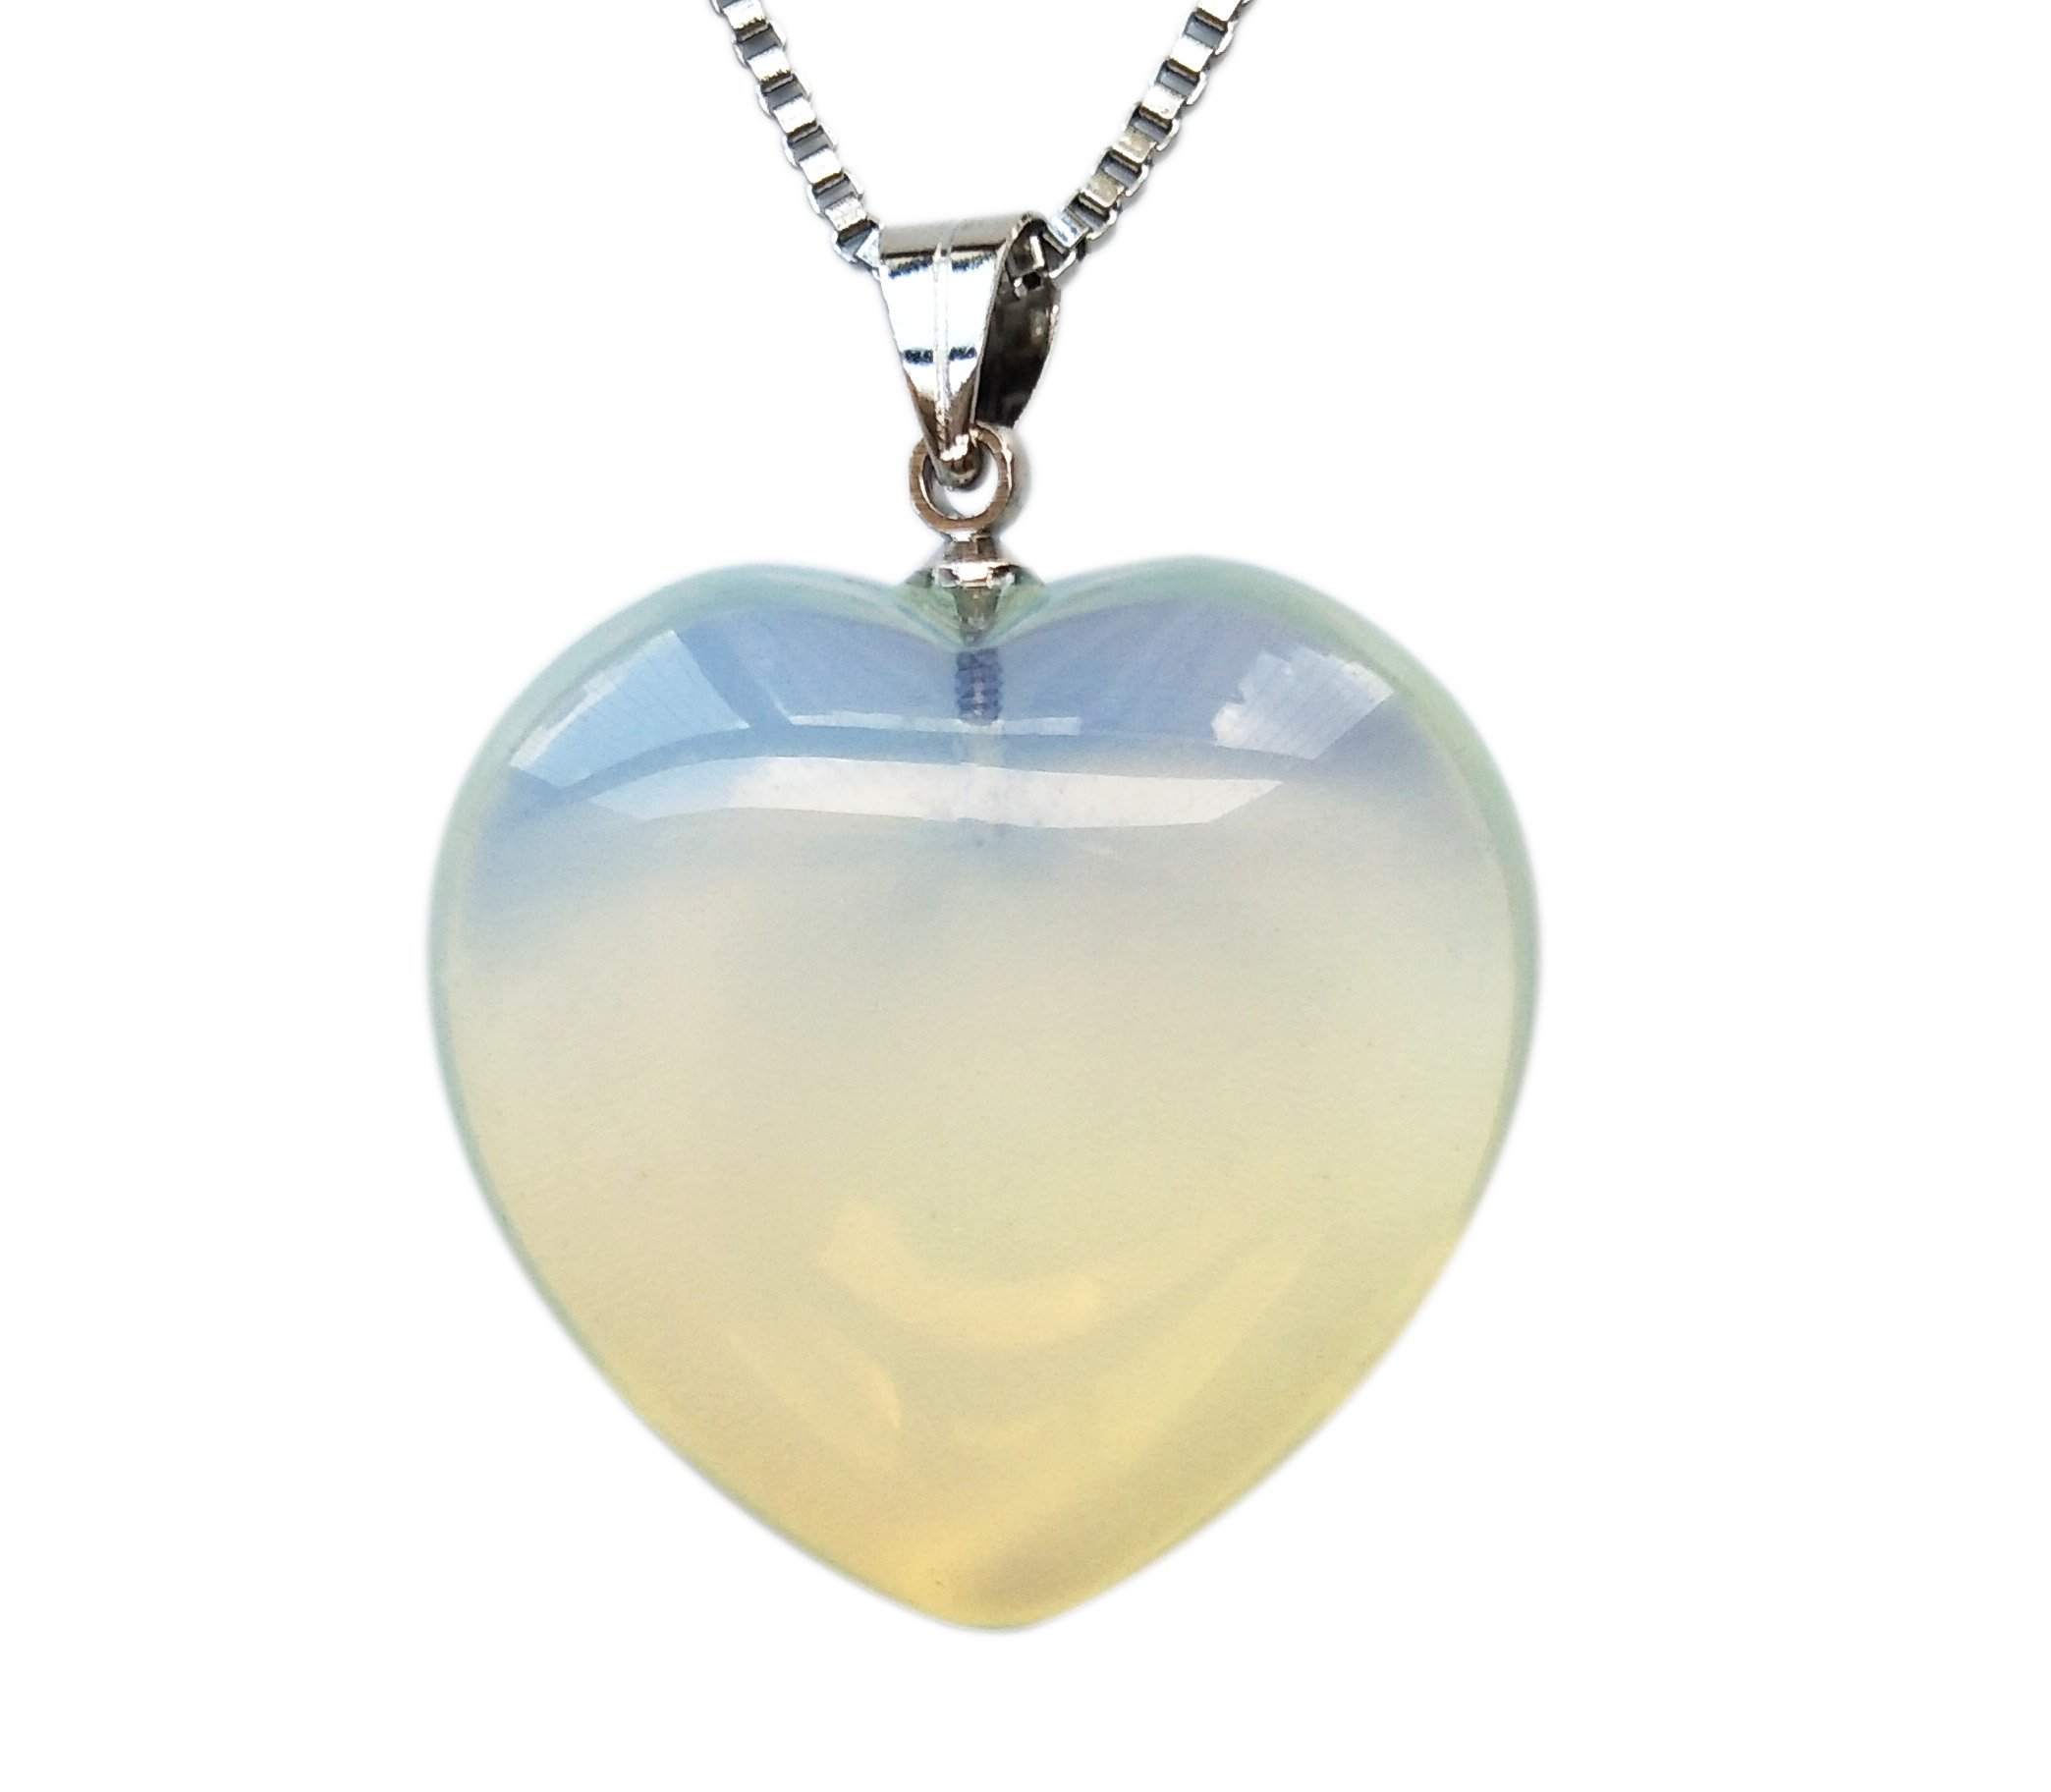 Puffy heart pendant necklace made of top quality opalite